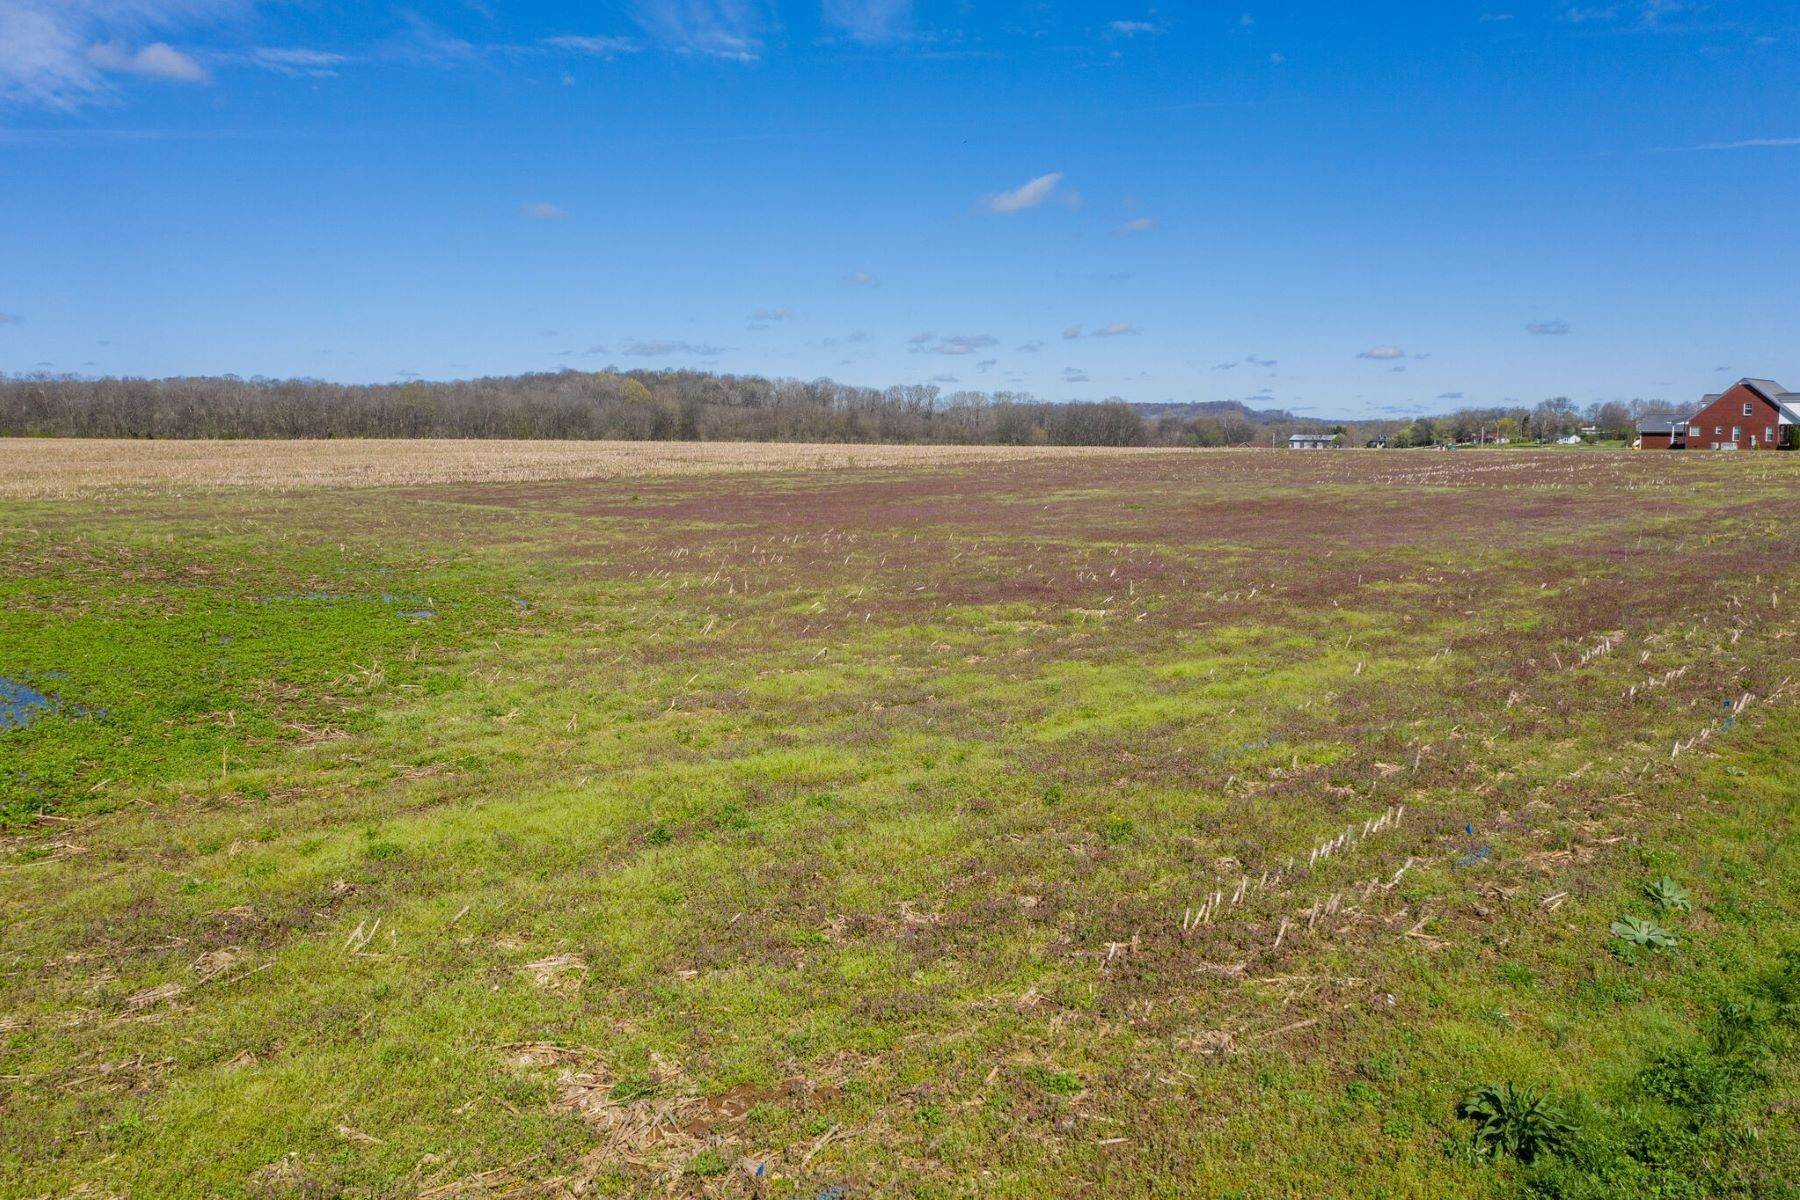 Land for Sale at 0 S Cross Bridges Rd, Mount Pleasant, Tn, 38474 0 S Cross Bridges Rd, Lot 1 Mount Pleasant, Tennessee 38474 United States